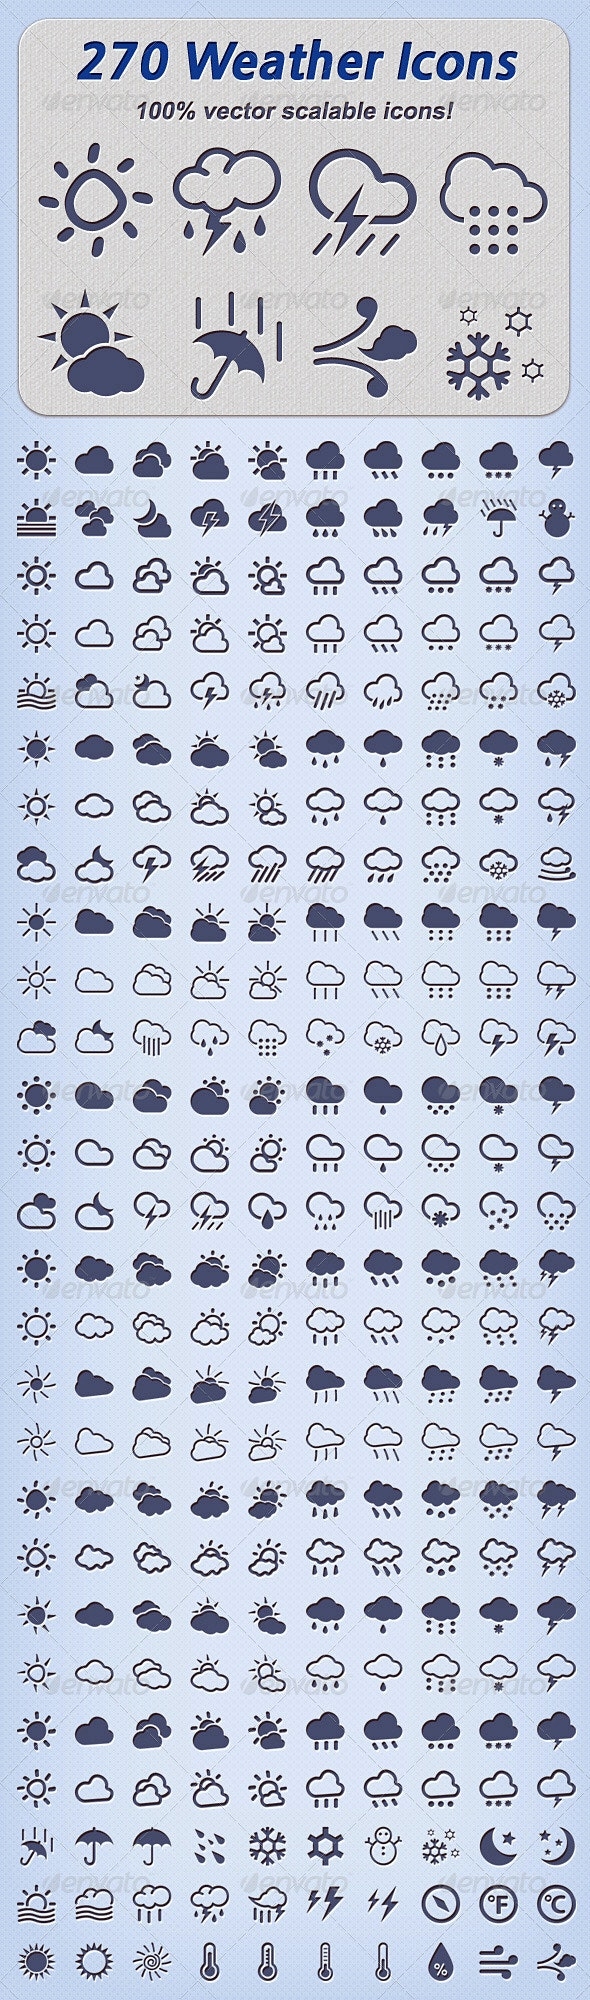 270 Weather Icons - Seasonal Icons